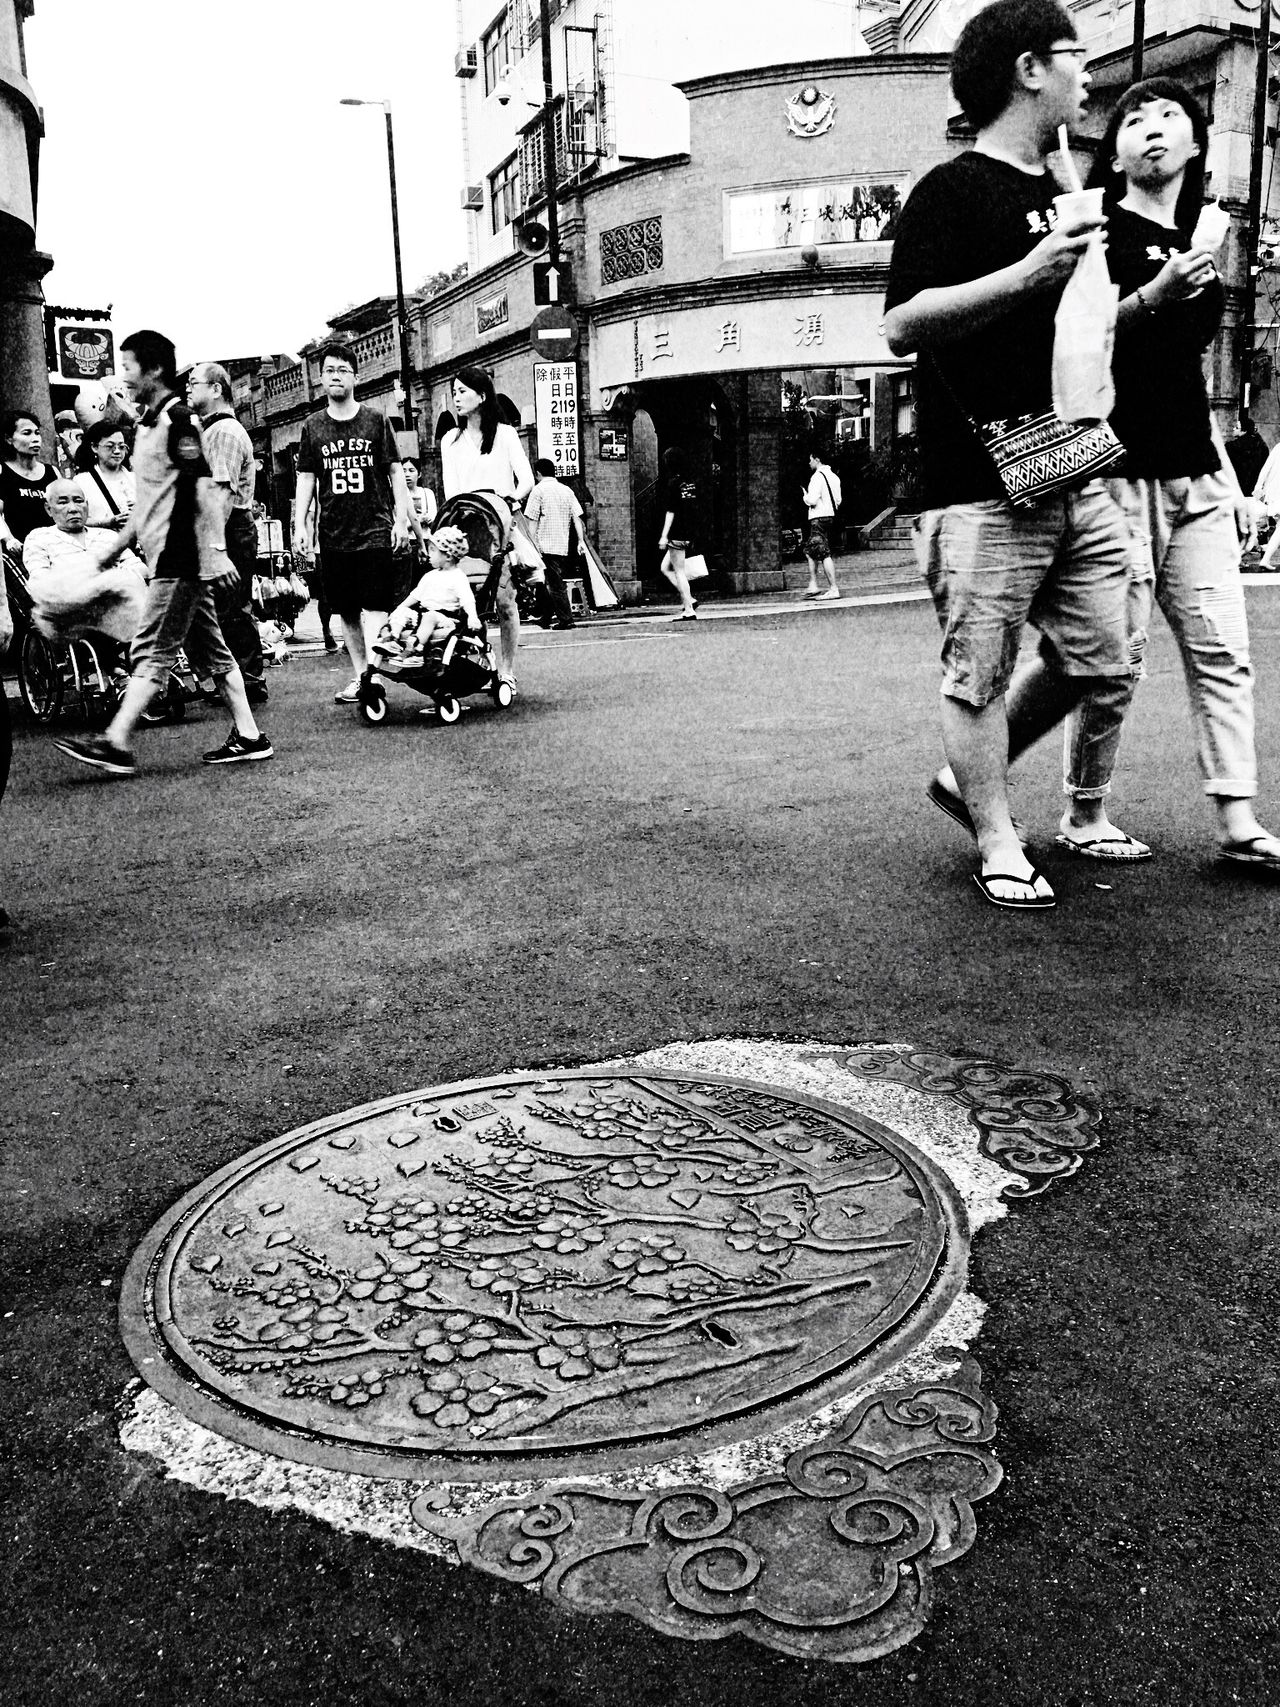 Pattern。 EyeEm Gallery EyeEm Best Shots - Black + White The Tourist Taking Photos Everything In Its Place Street Photography TOWNSCAPE How Do We Build The World? Street Sanxia